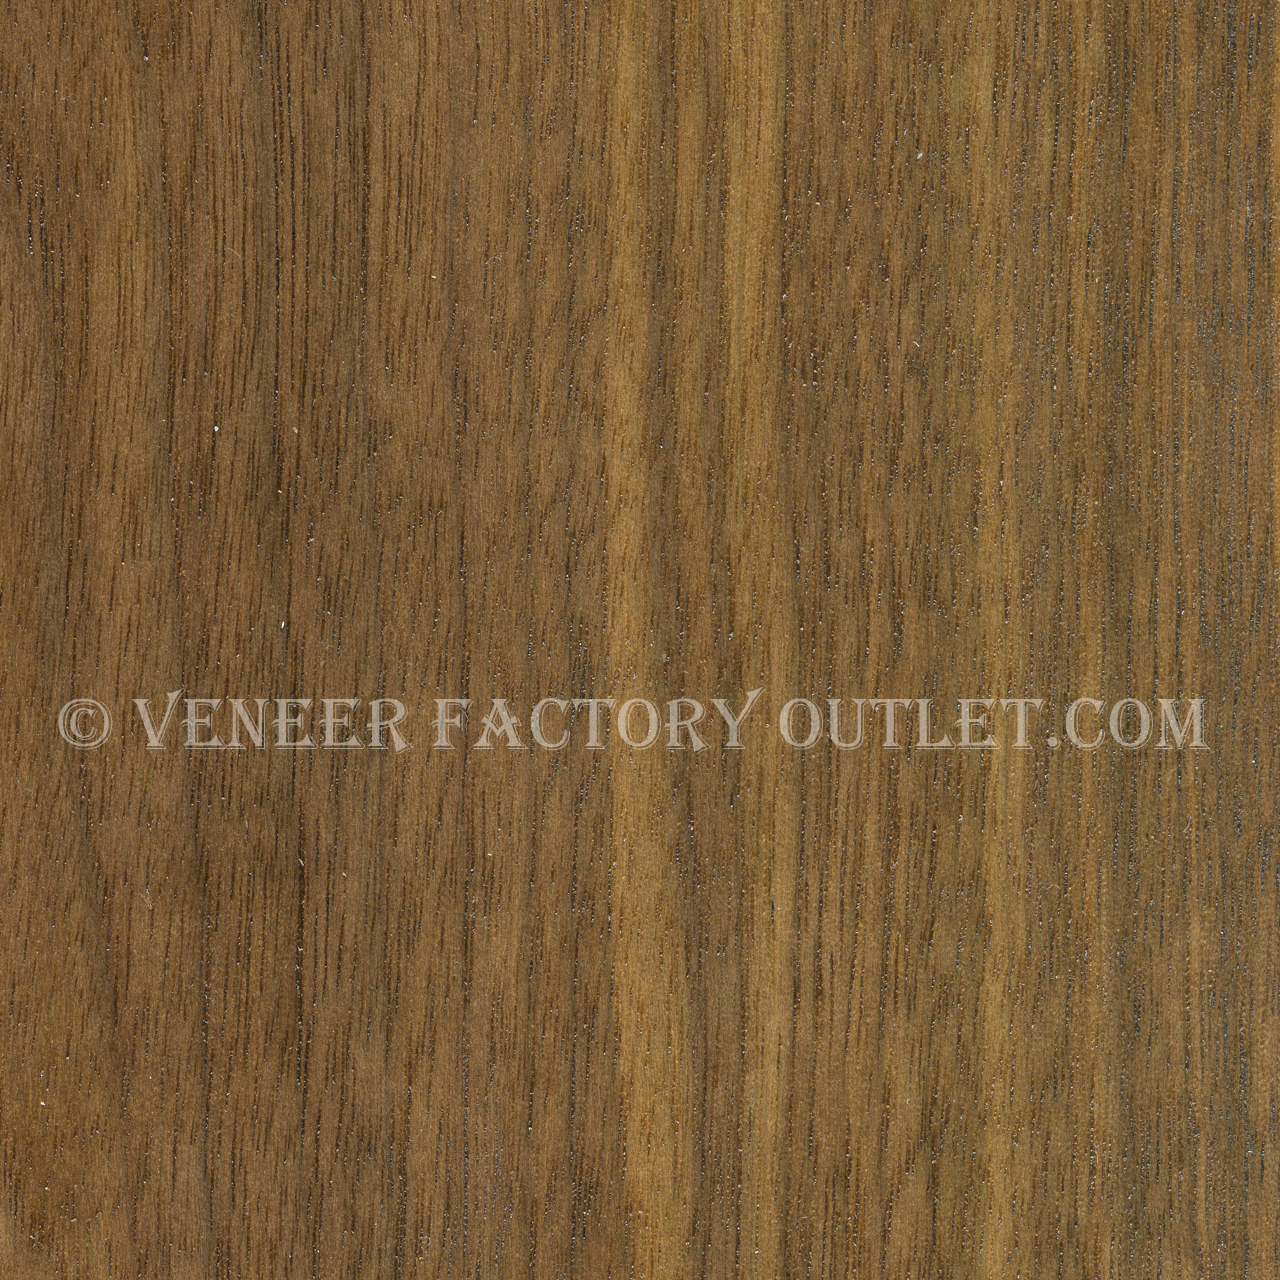 woodys veneer factory Woodys veneer factory has contacted you because the board wants their organization to be evaluated to determine the reasons for loss of money,.